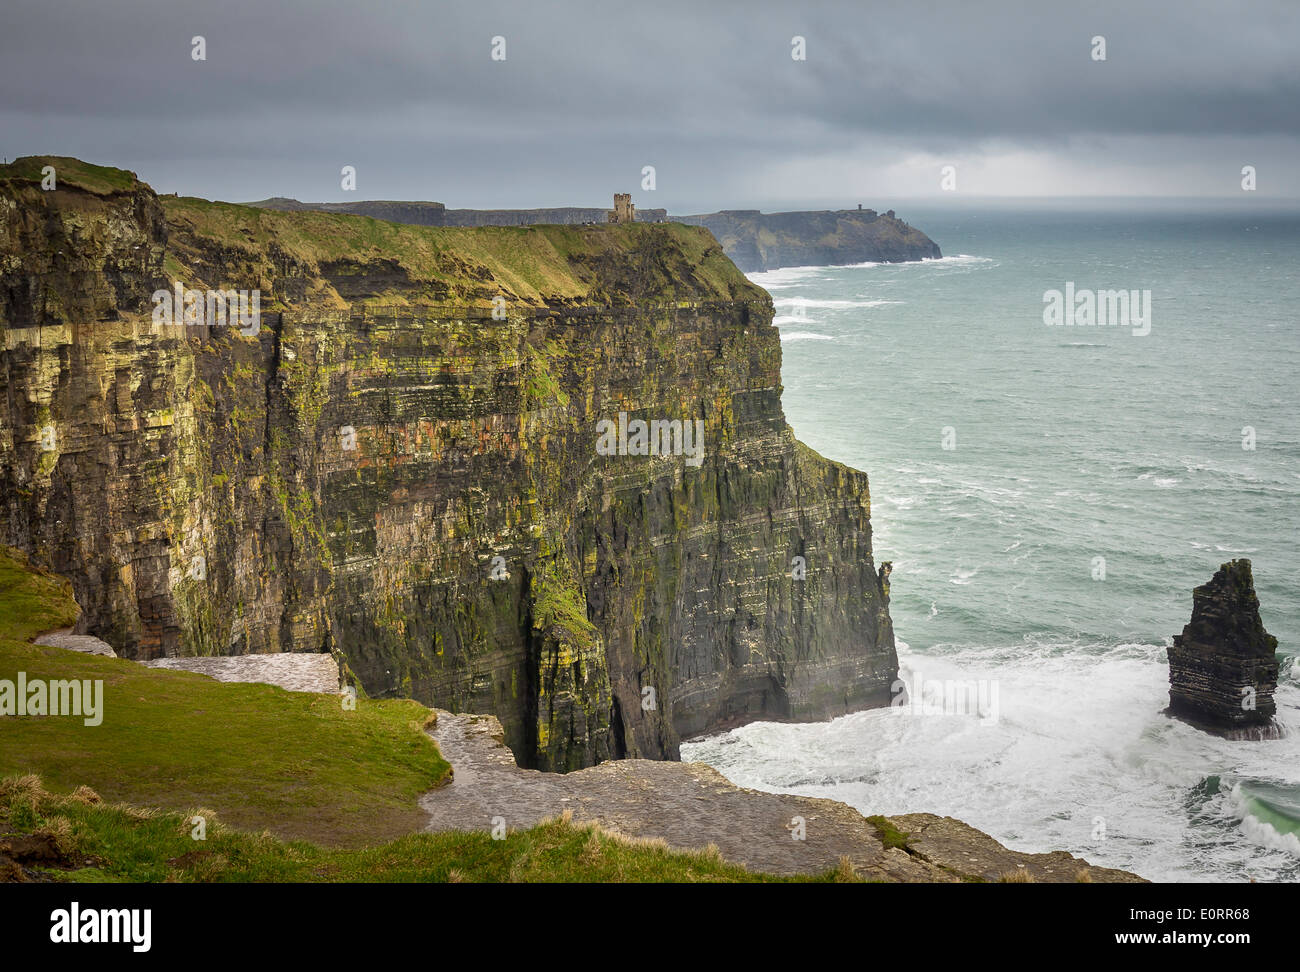 Cliffs of Moher on the Atlantic Coast of County Clare, Republic of Ireland, Europe with O'Brien's Tower on stormy day - Stock Image